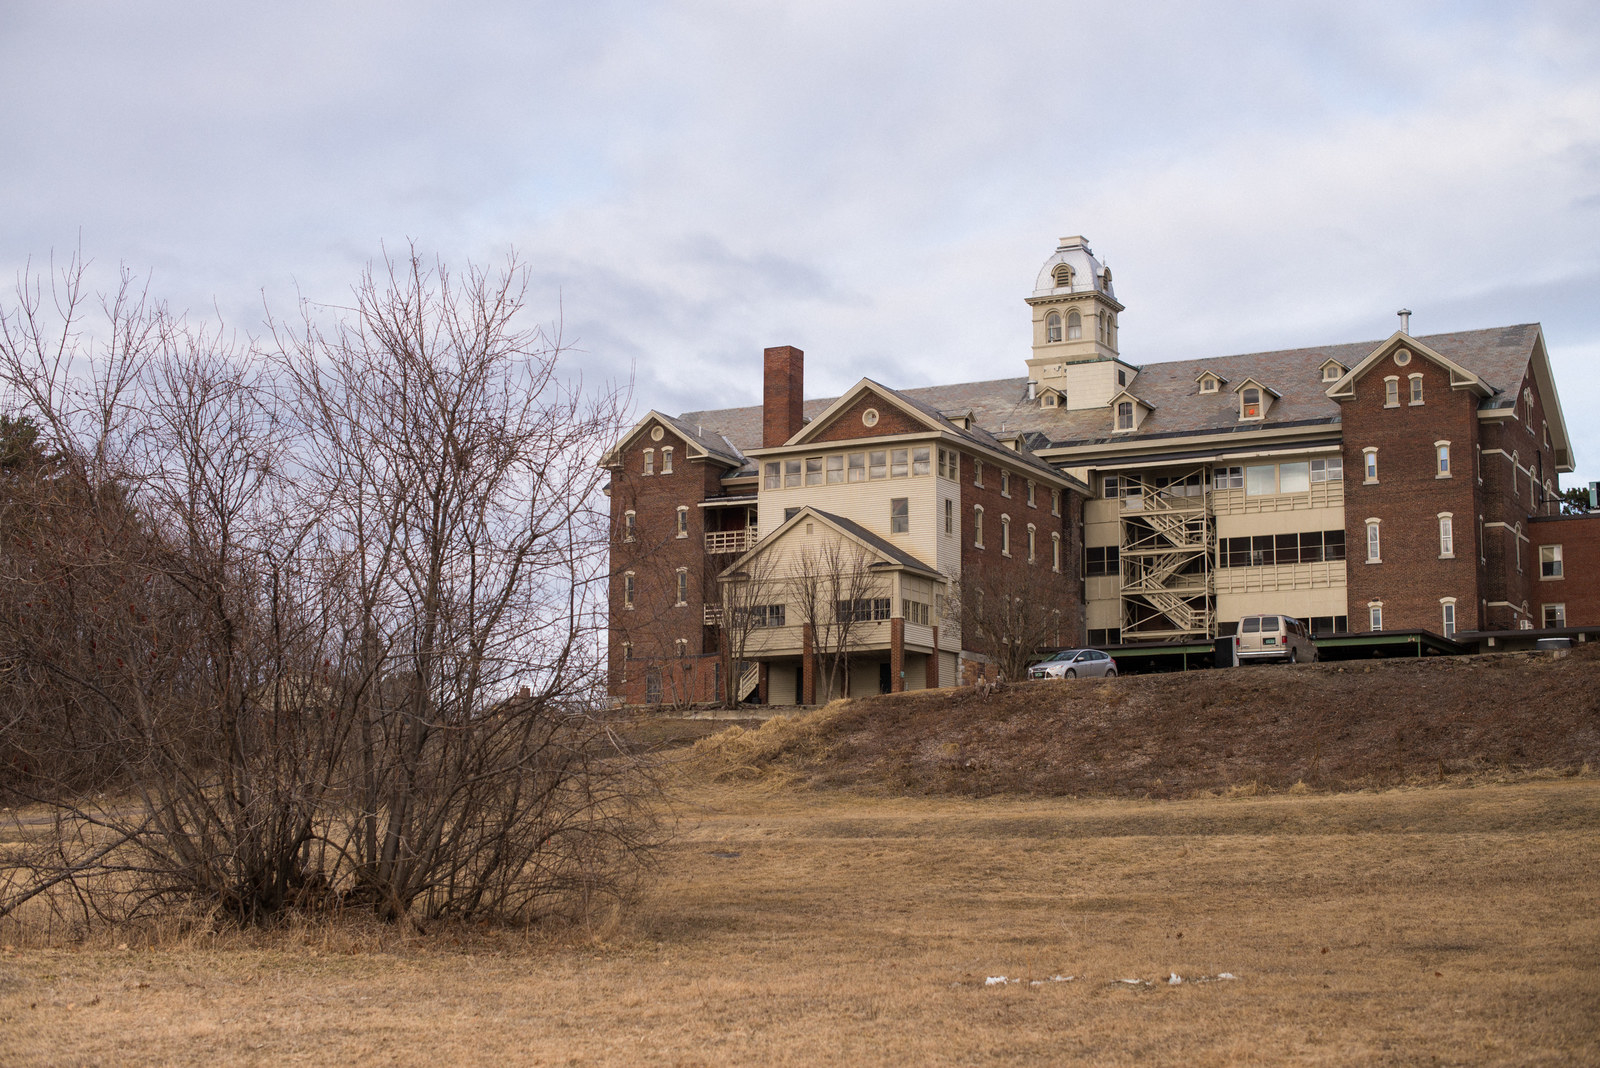 We Saw Nuns Kill Children: The Ghosts of St. Joseph's Catholic Orphanage